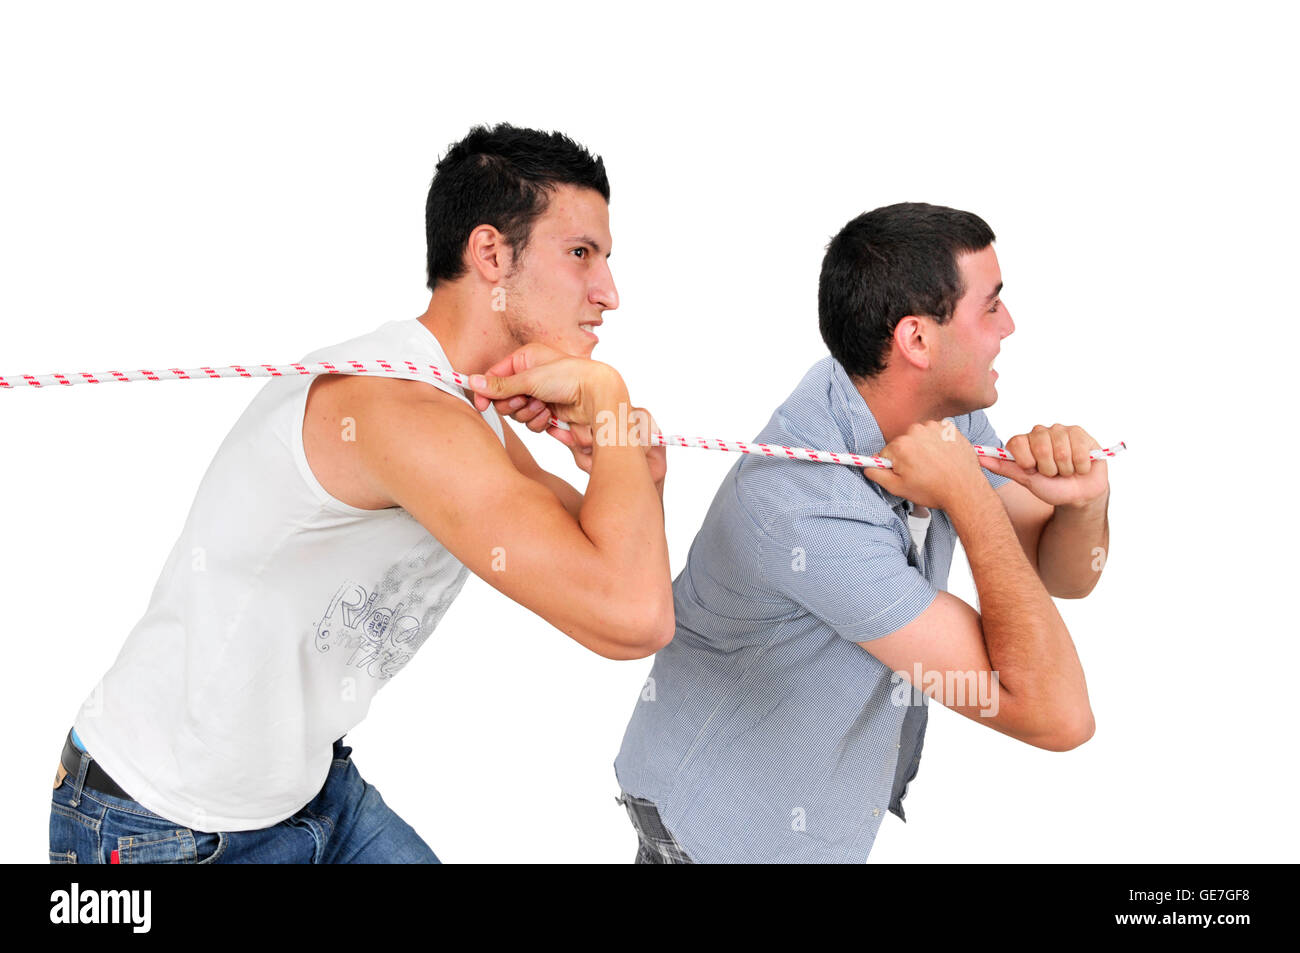 Two middle eastern young men pulling the burden together - Stock Image